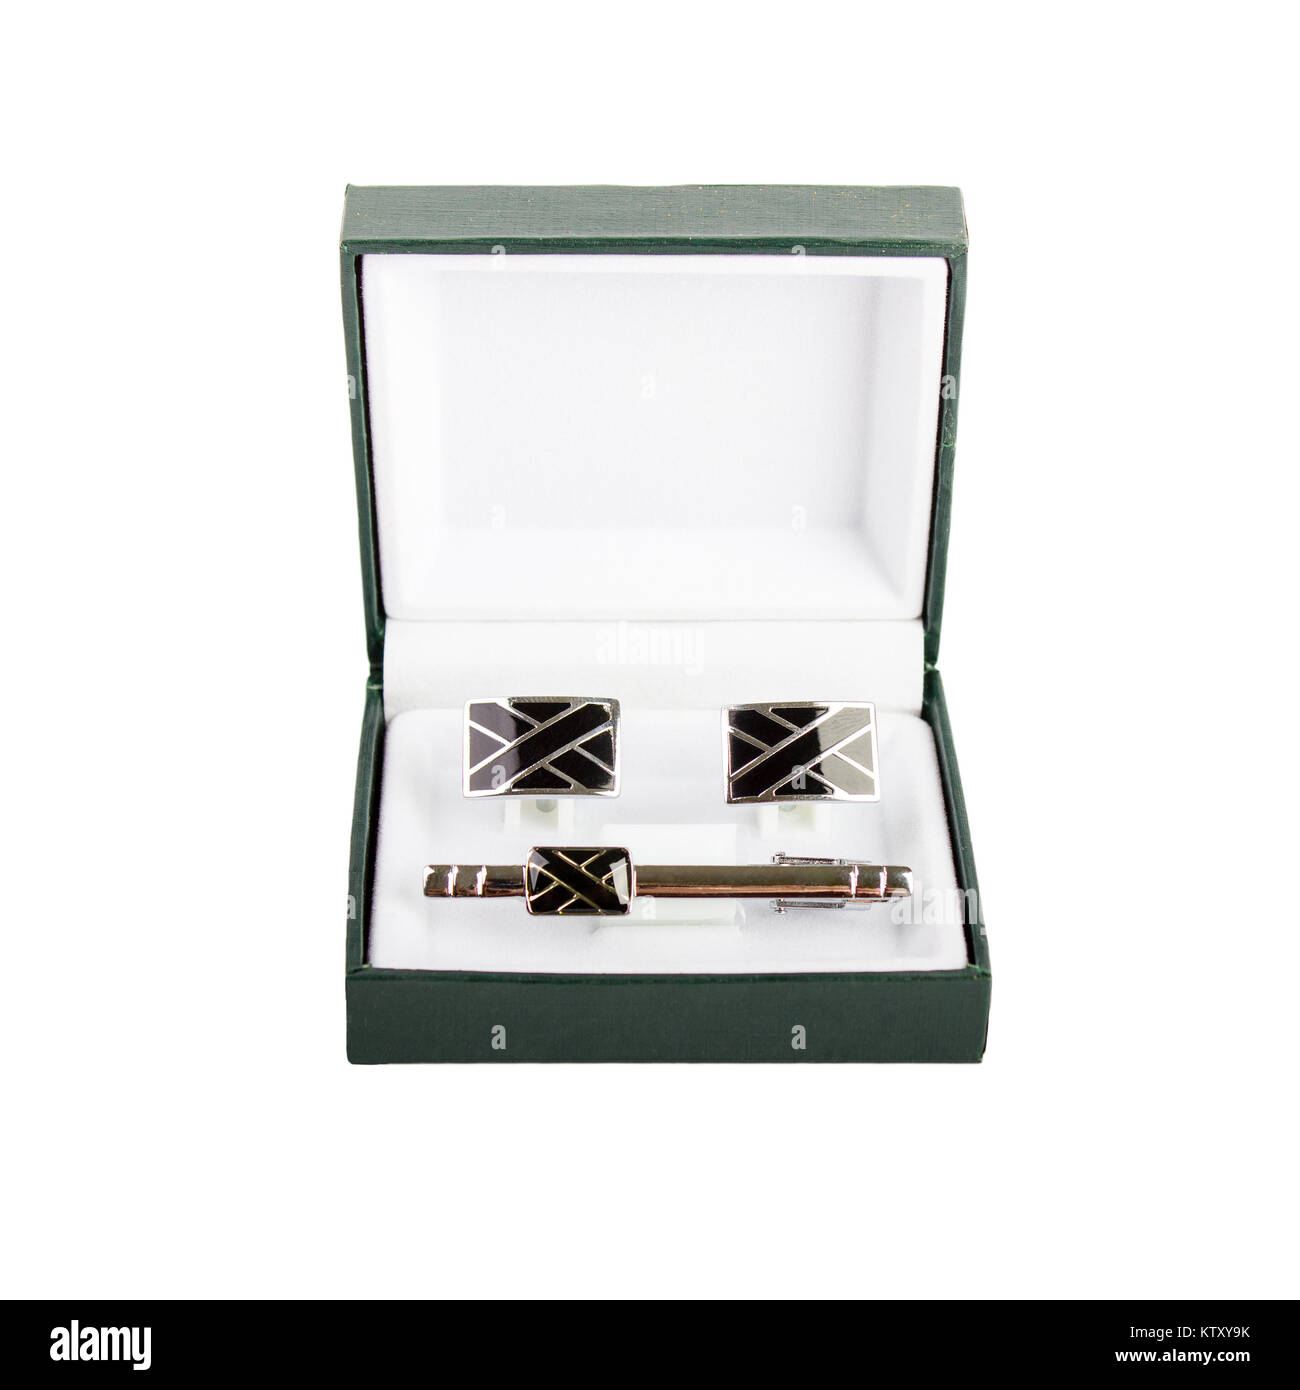 Cuff links in a box on white background. Male fashion accessories. - Stock Image